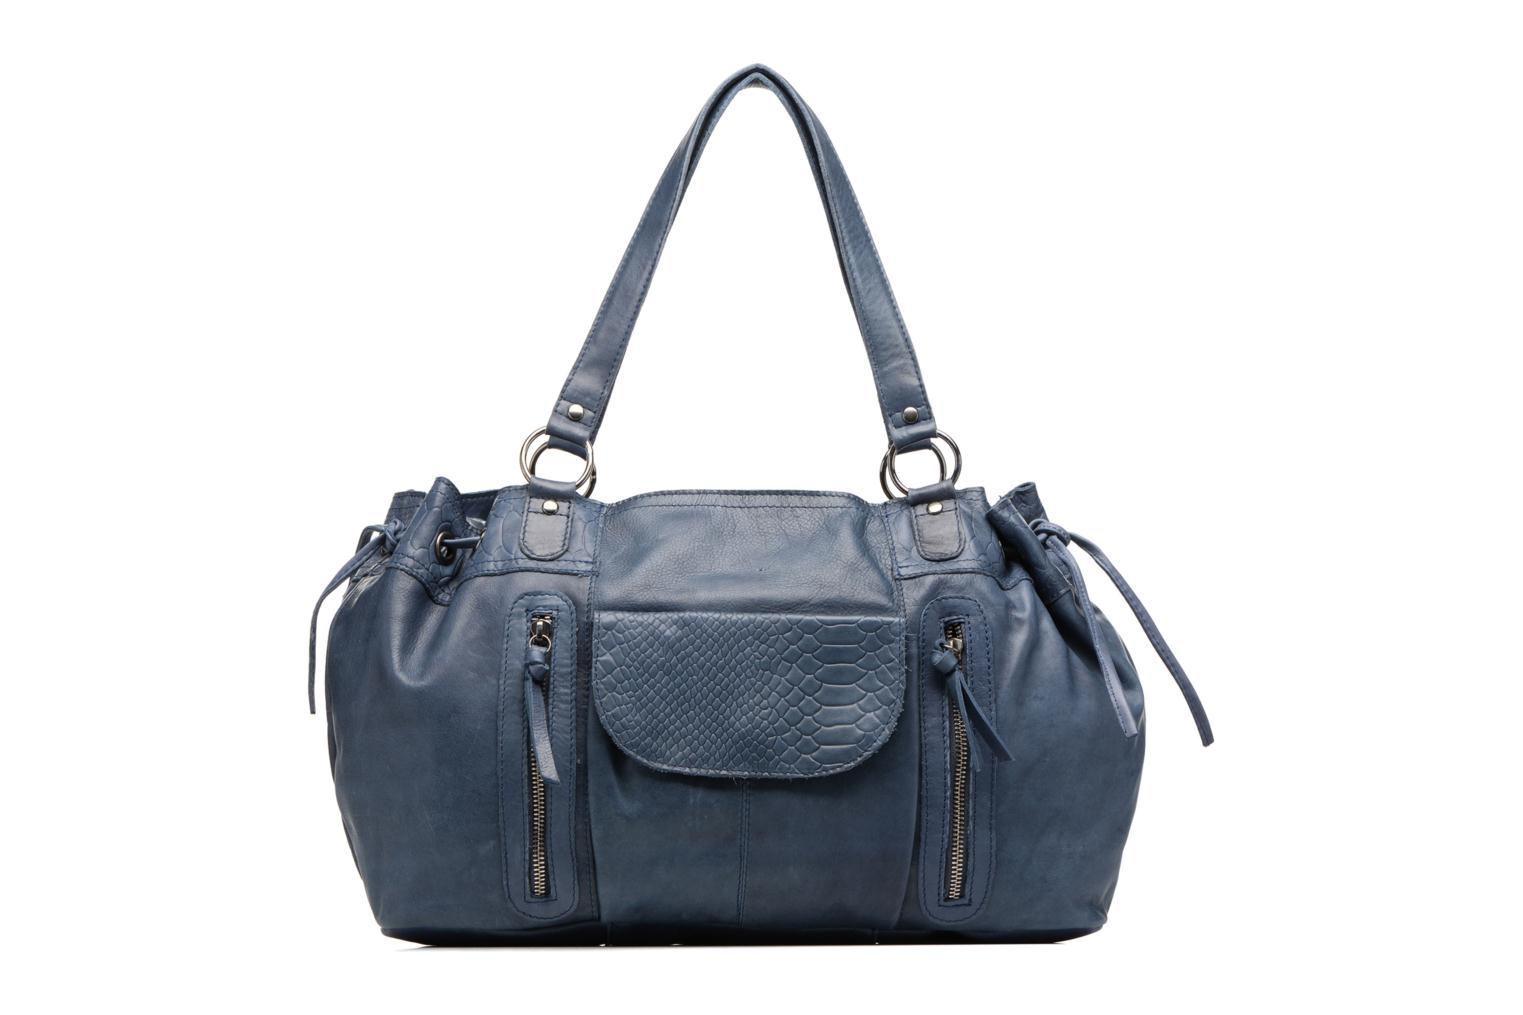 Jihano Leather Bag Navy Blazer